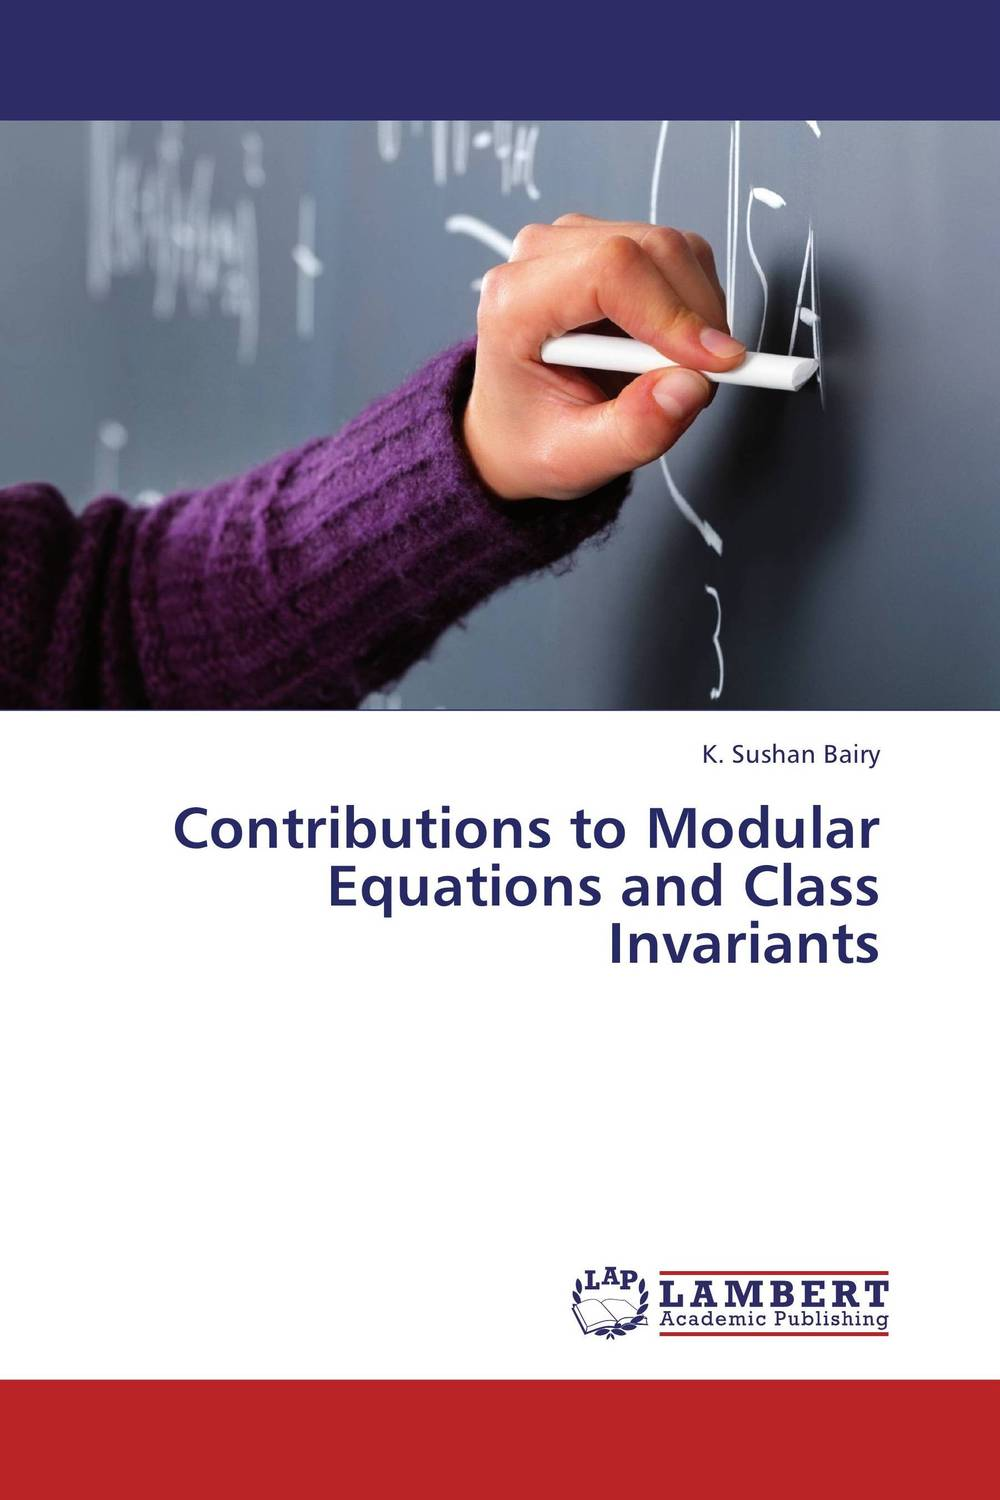 Contributions to Modular Equations and Class Invariants